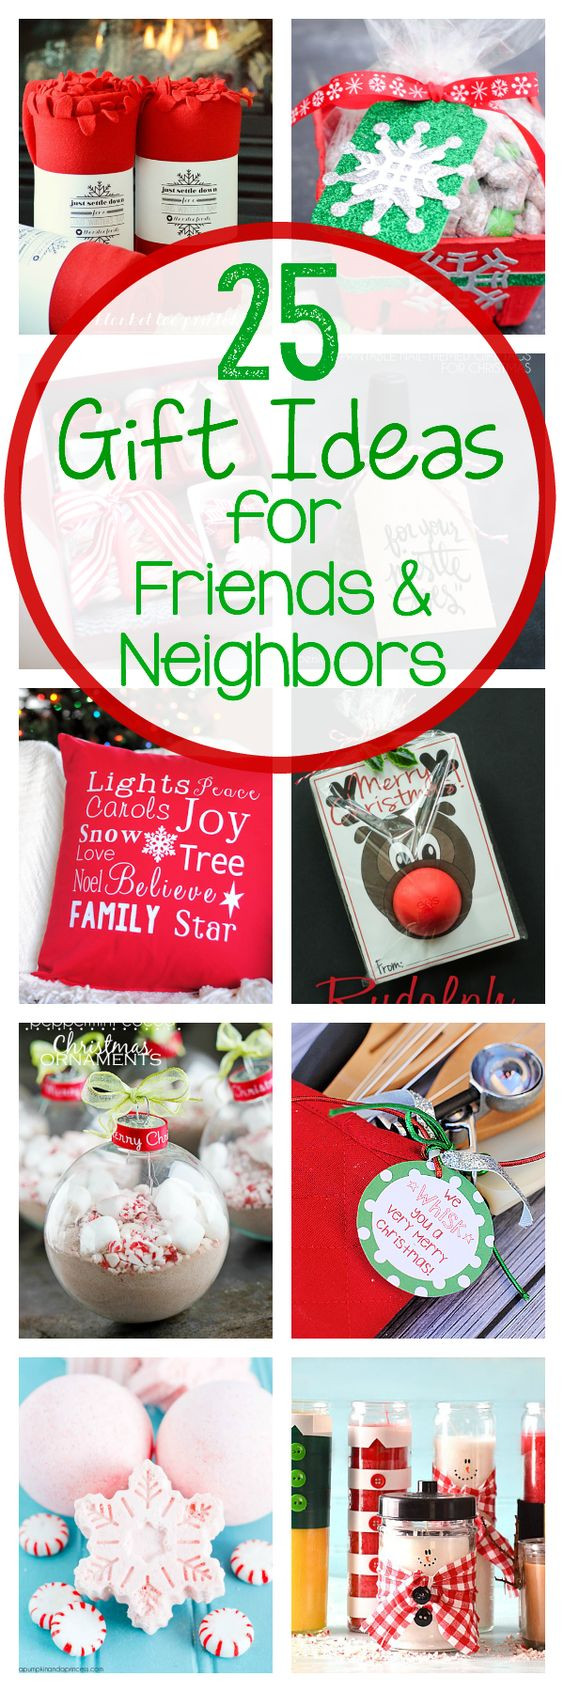 Holiday Gift Ideas For Friends  25 Gift Ideas for Friends & Neighbors